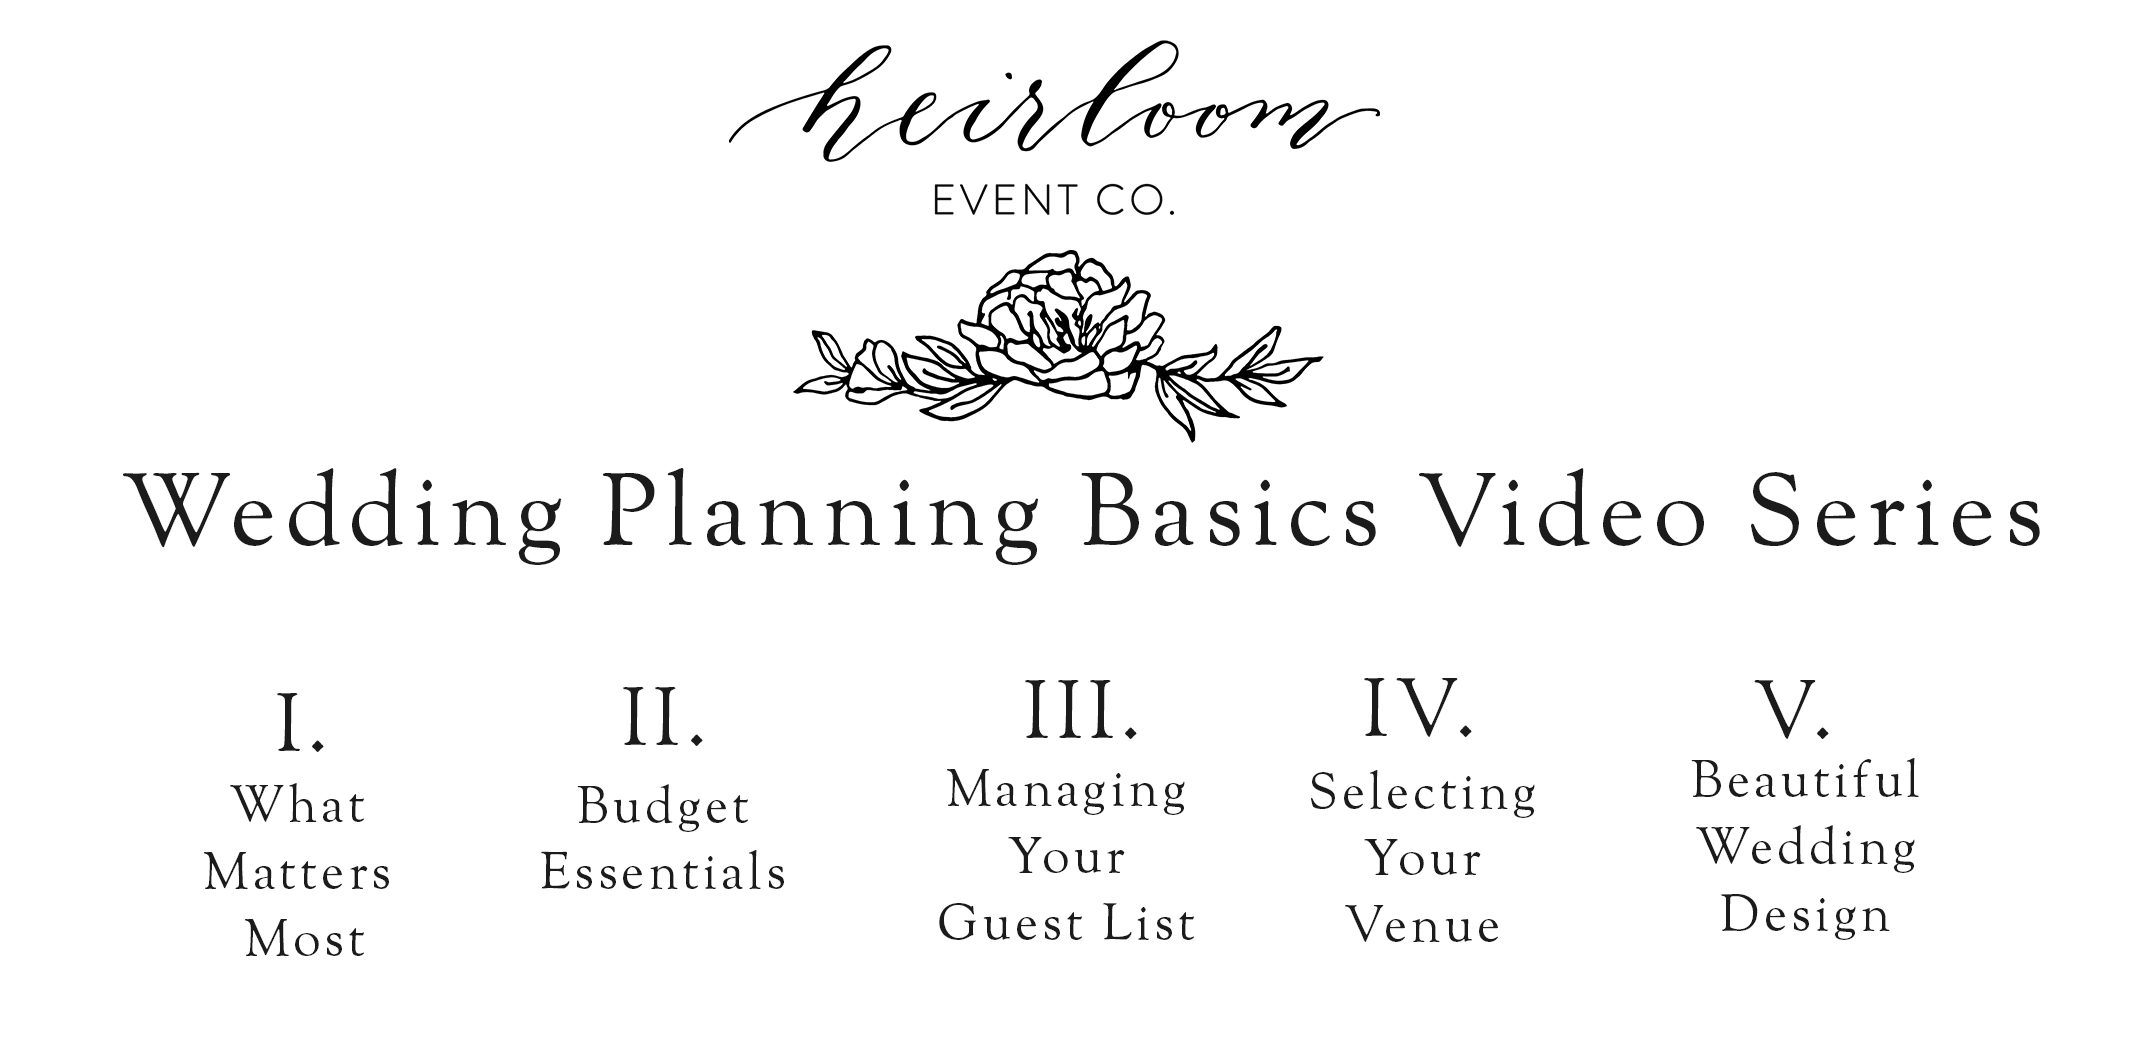 Heirloom Event Co. Wedding Planning Basics Video Series